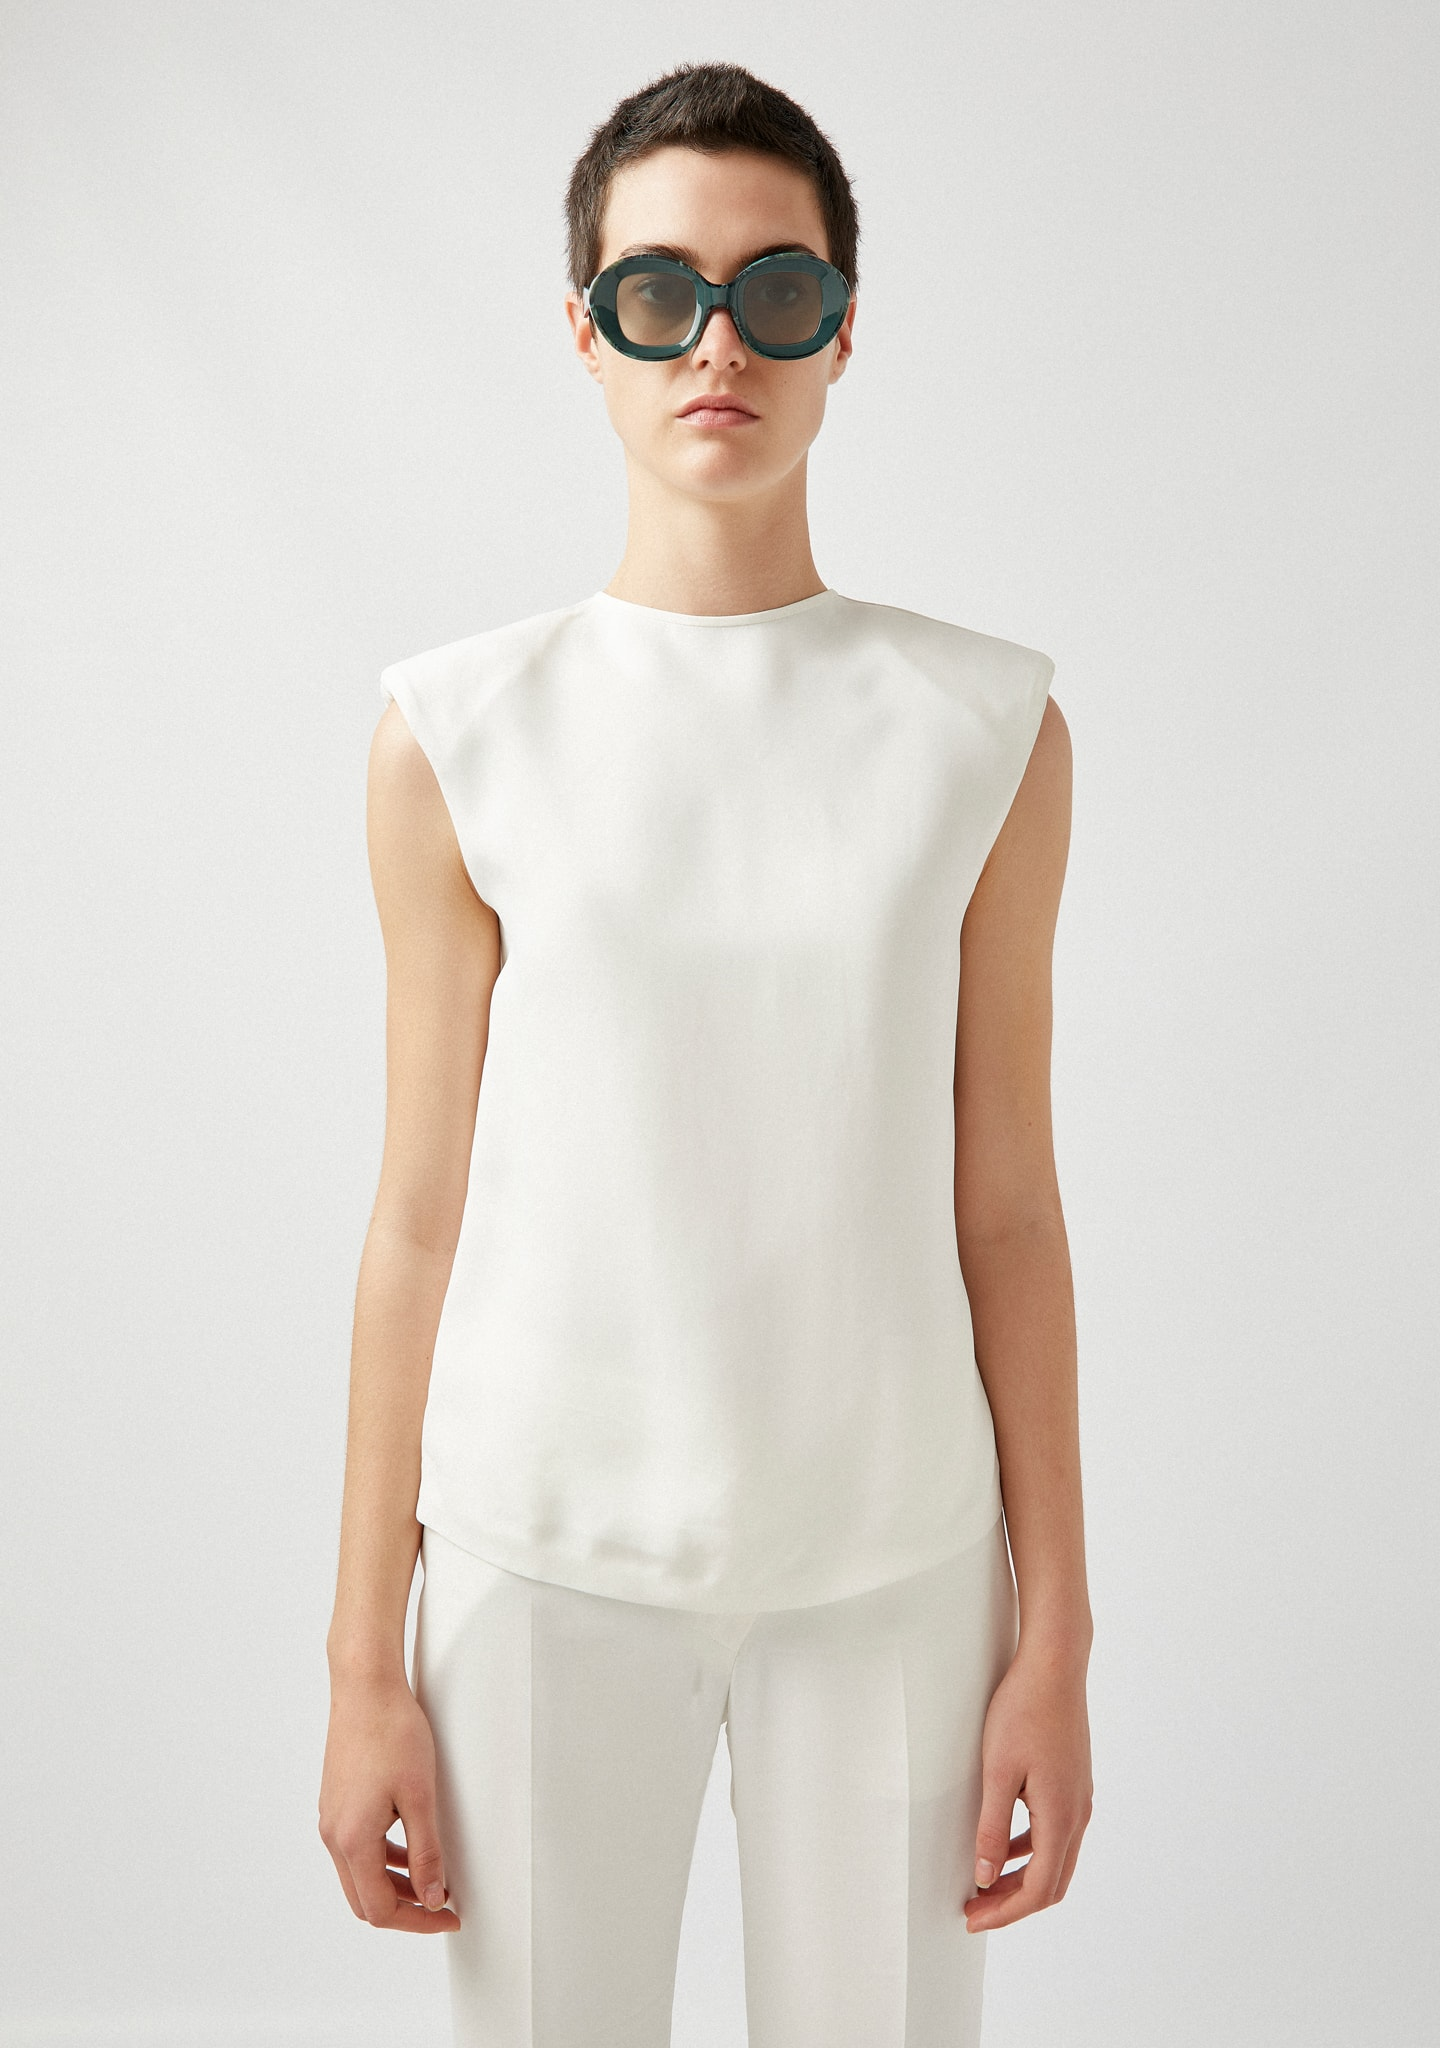 Gafas PADDED SHOULDERS TOP Color 0